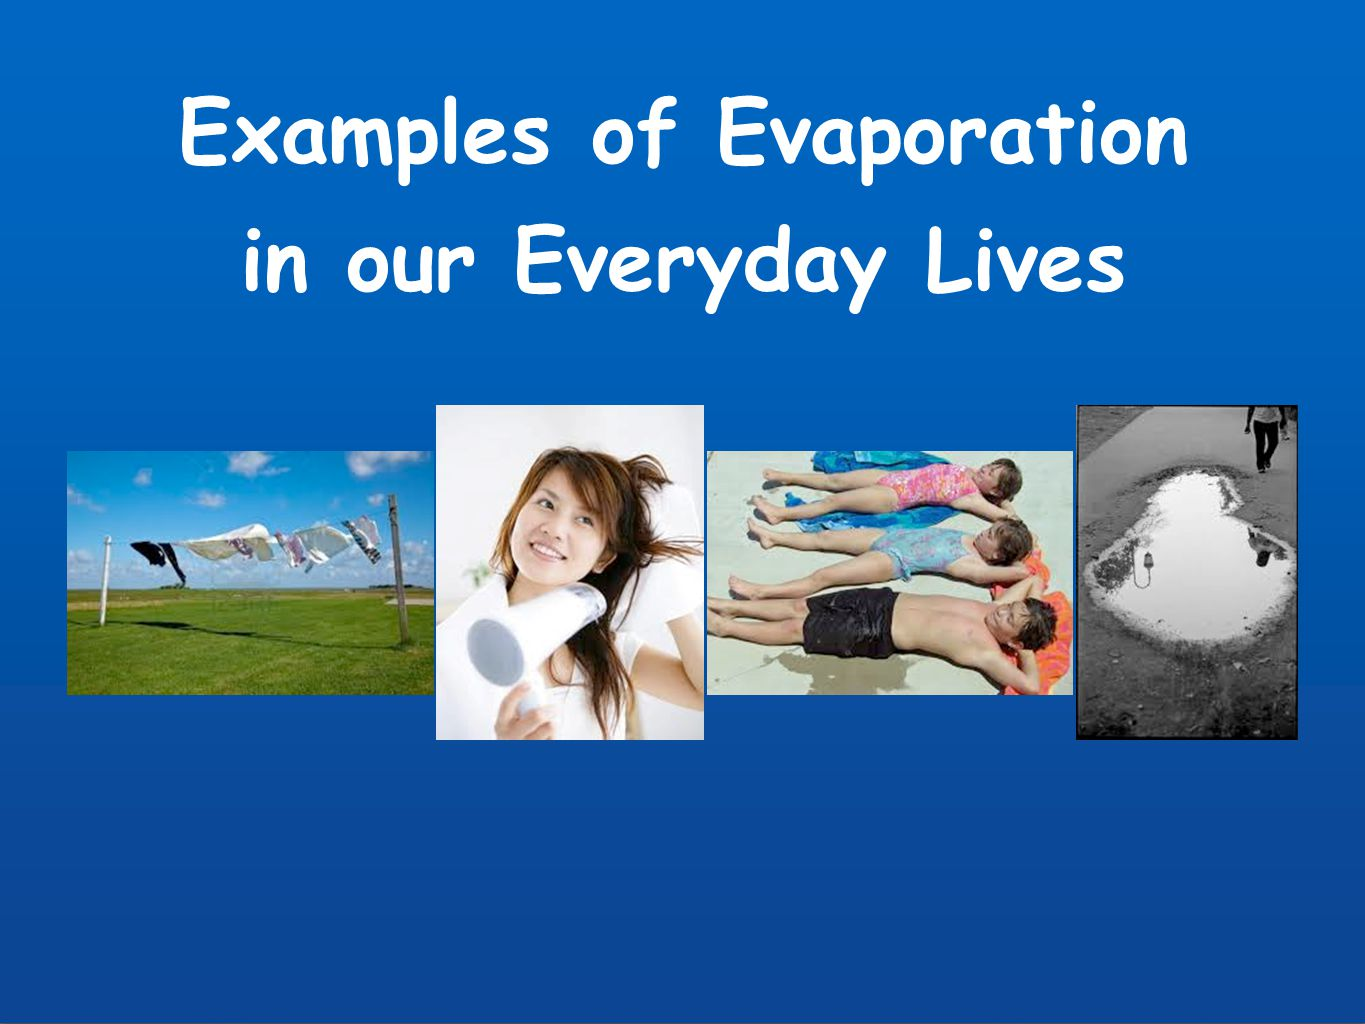 evaporationin our daily life The overuse of technology in our daily life essay  carter december 12, 2011  microeconomics in my daily life throughout my life, i have always been reading  and hearing about economic  evaporationin our daily life.